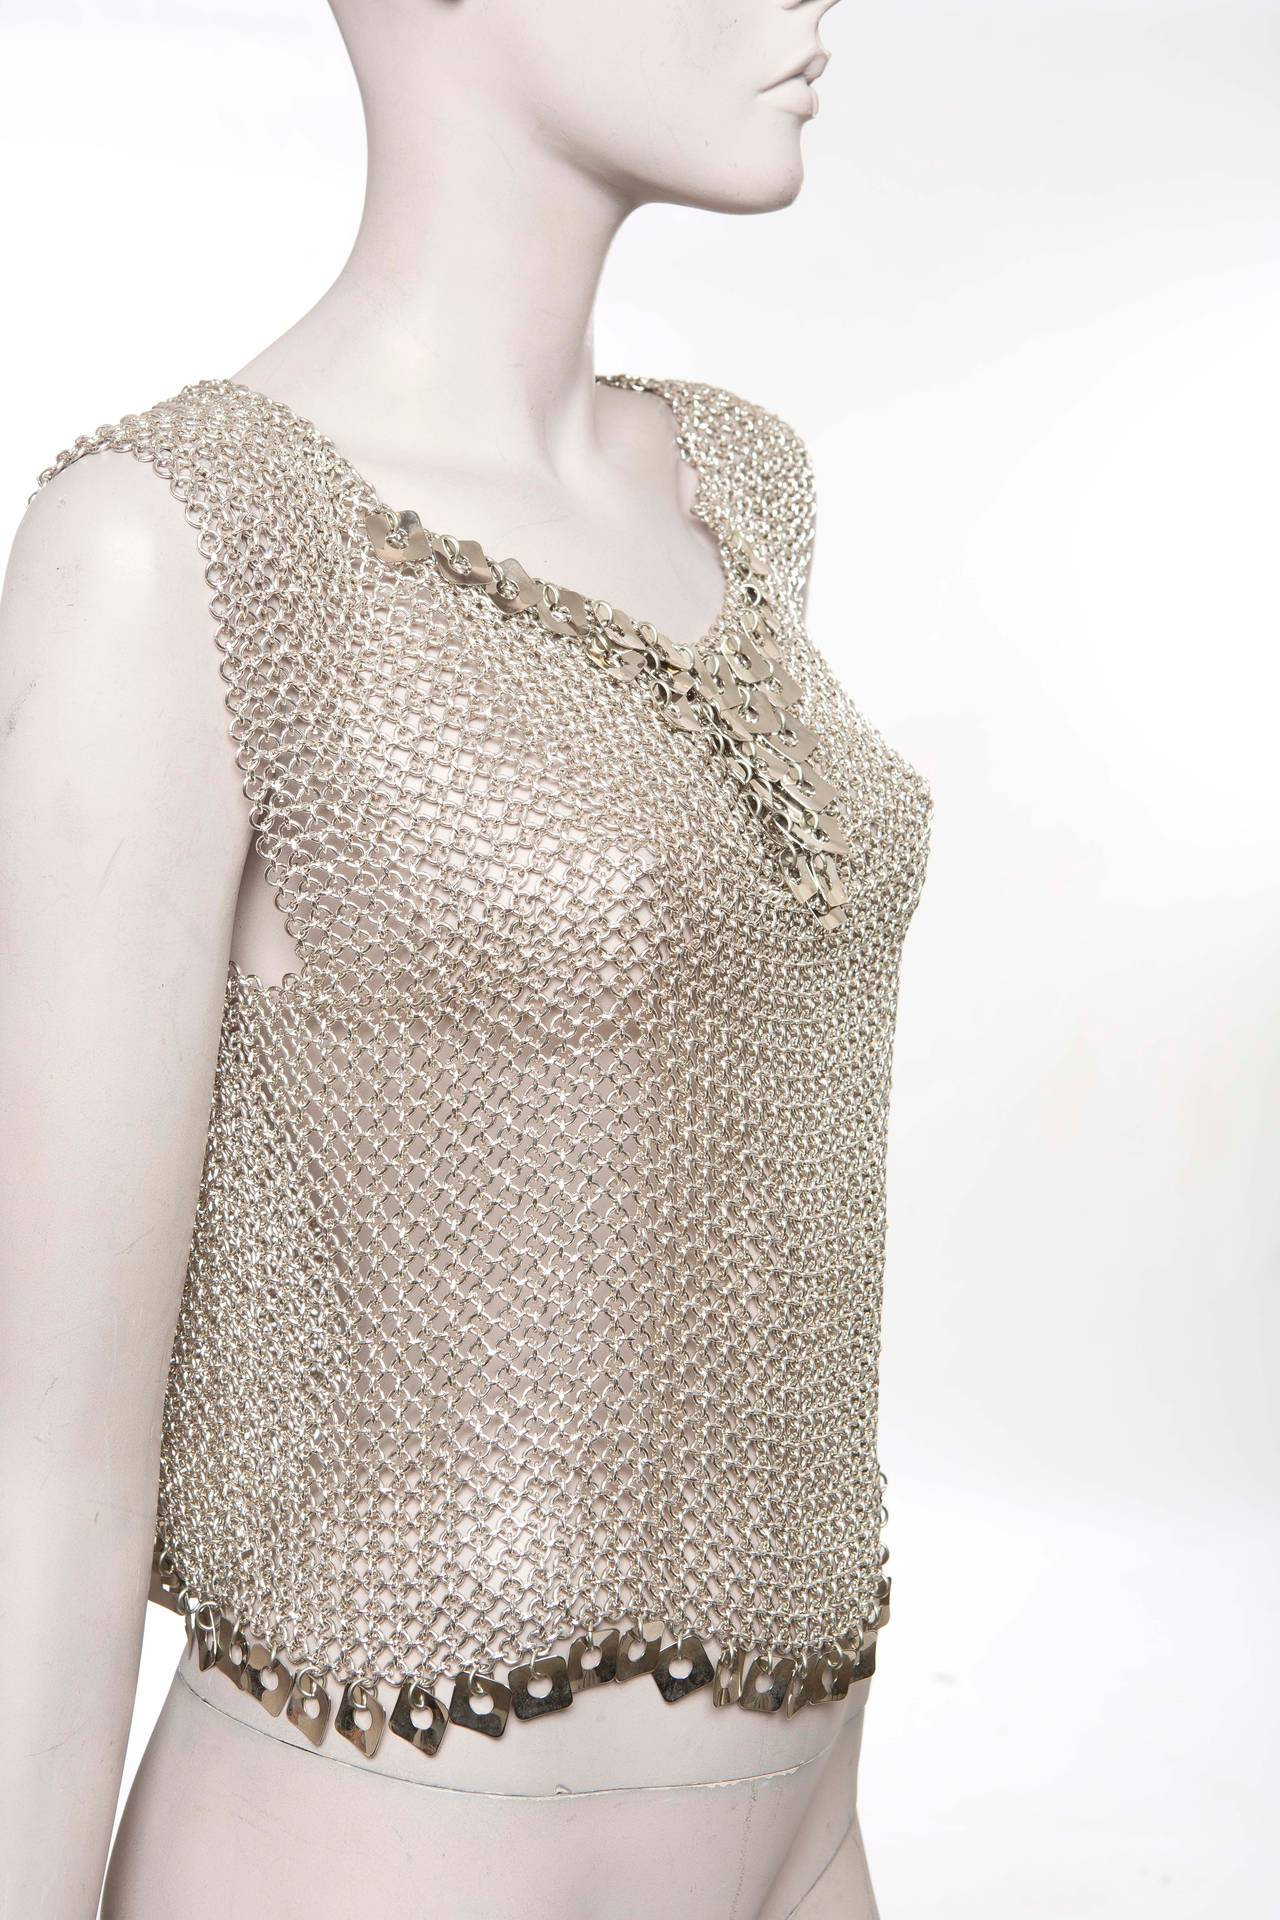 Paco Rabanne, circa 1970's chain-mail top with charm accented yoke and asymmetrical scalloped hemline featuring charm embellishments.